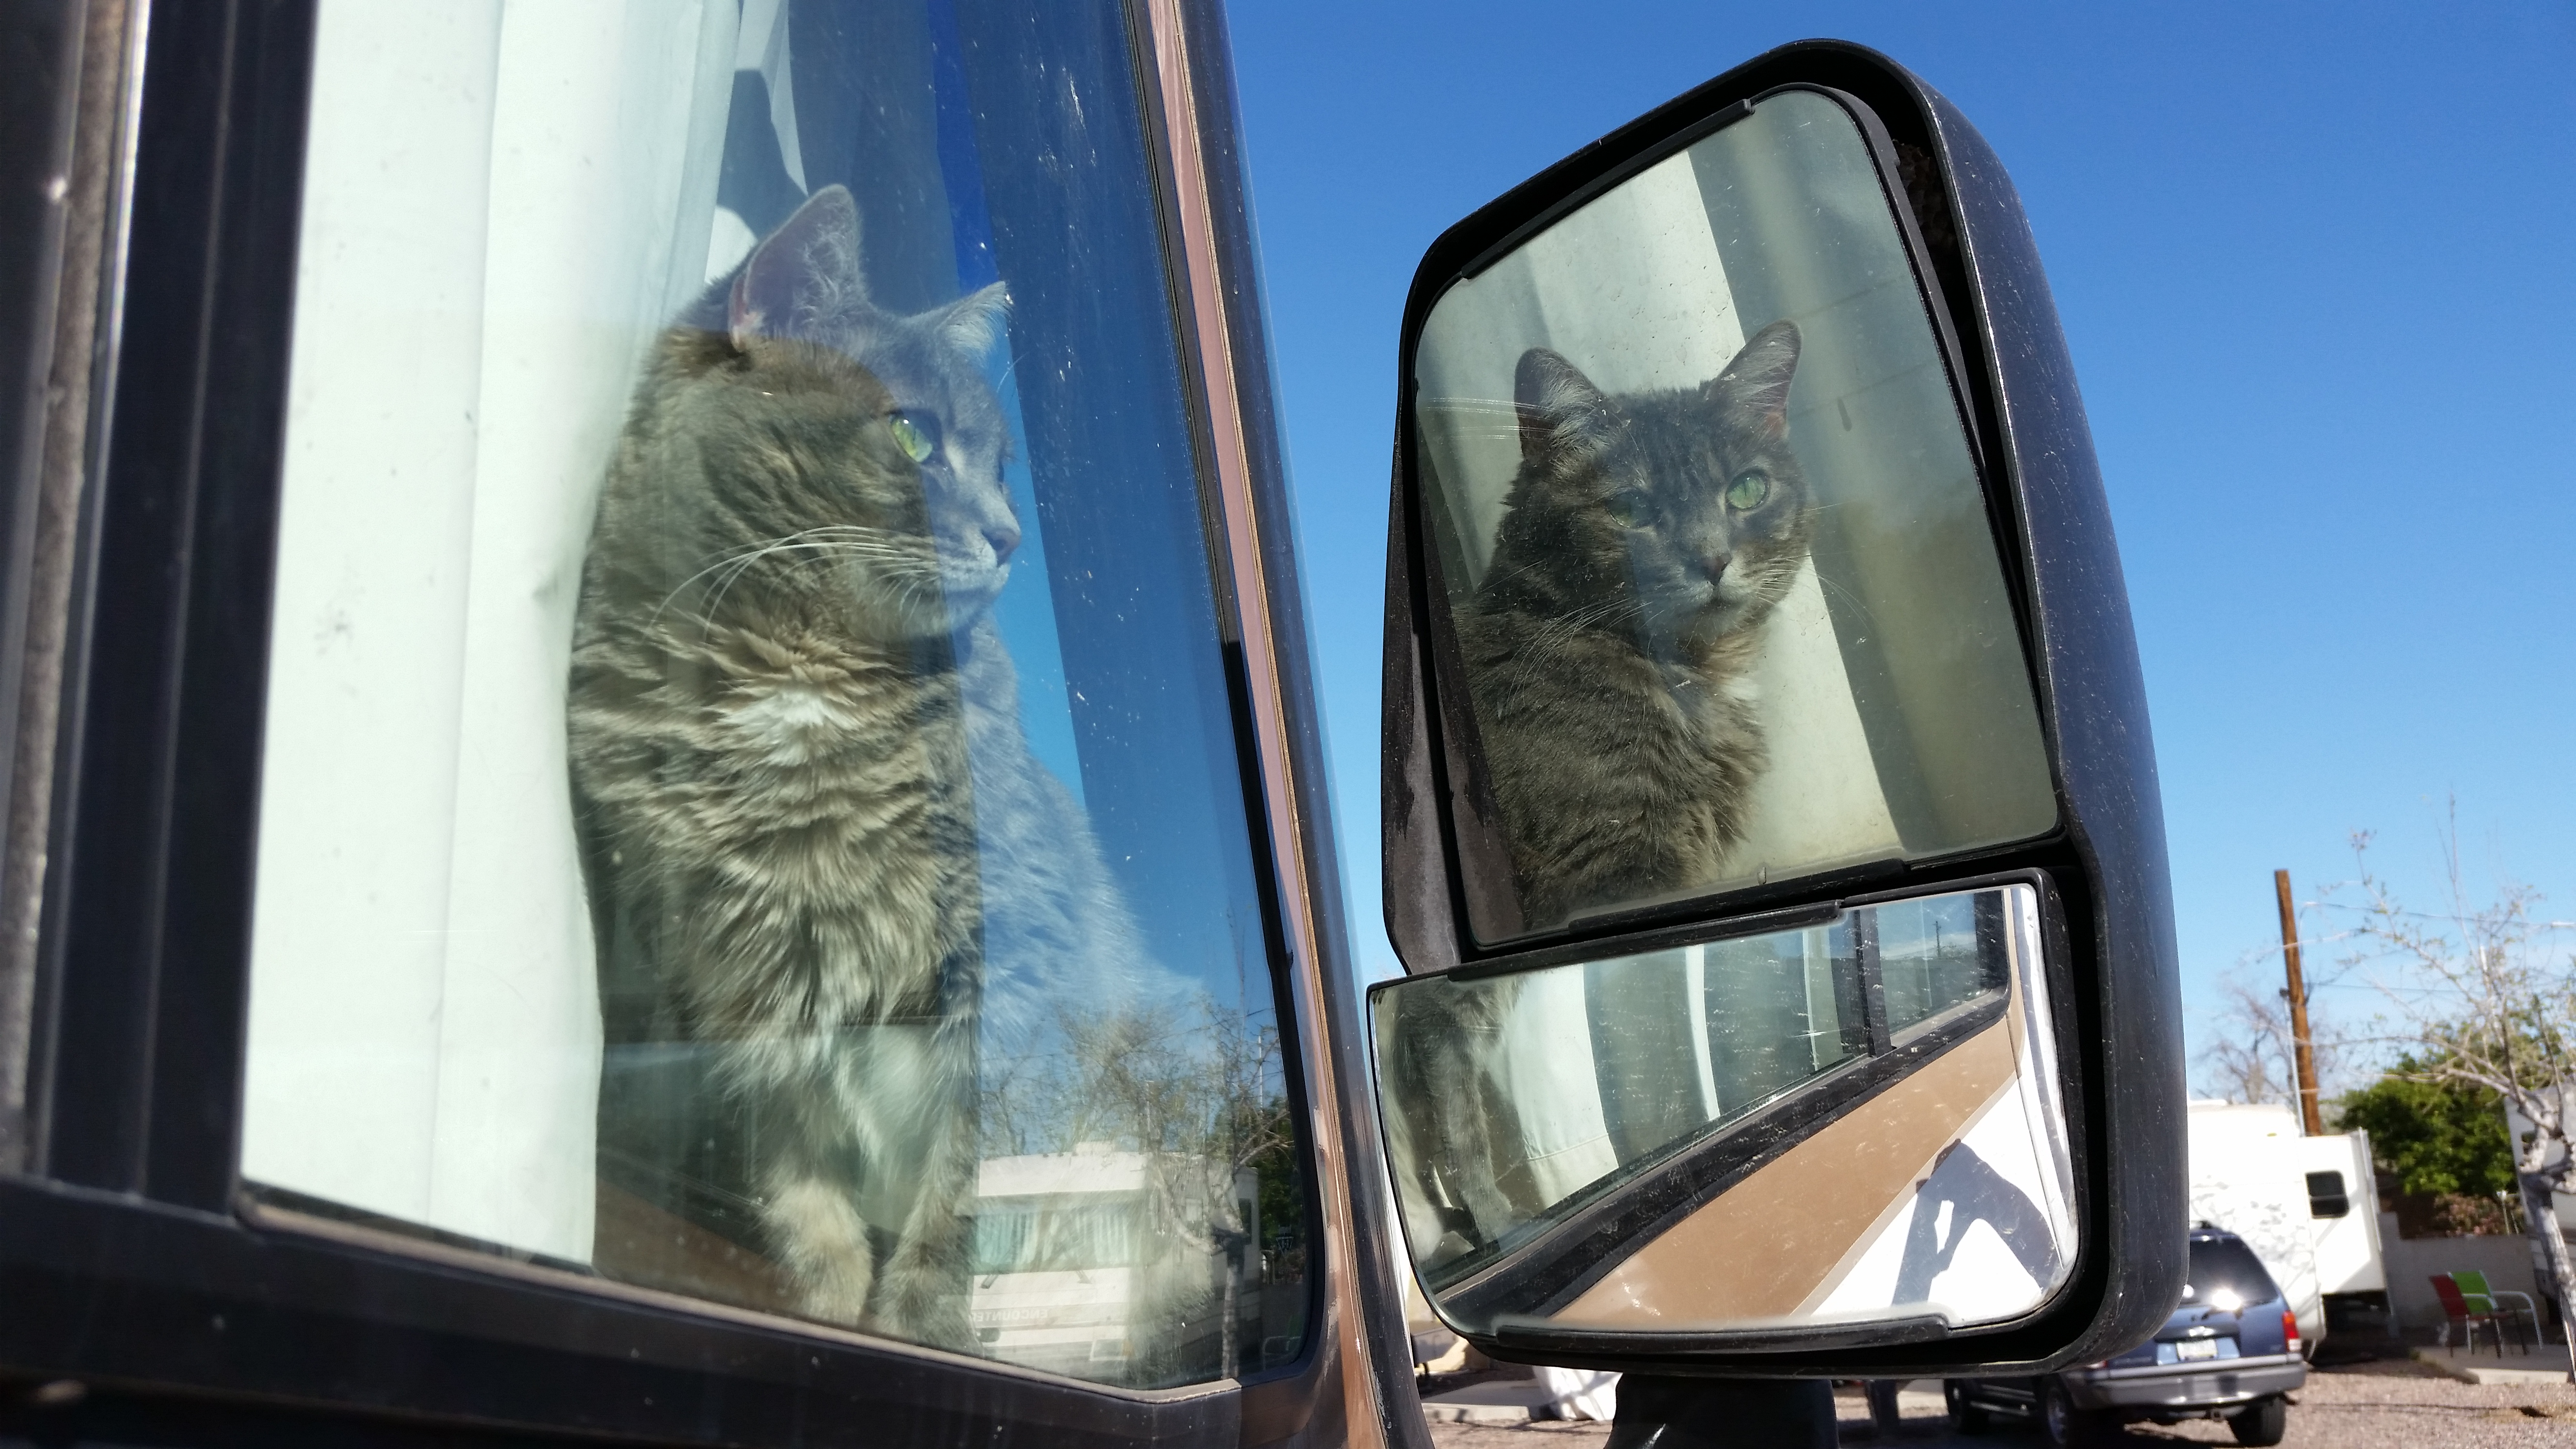 RV travelling with Cats!